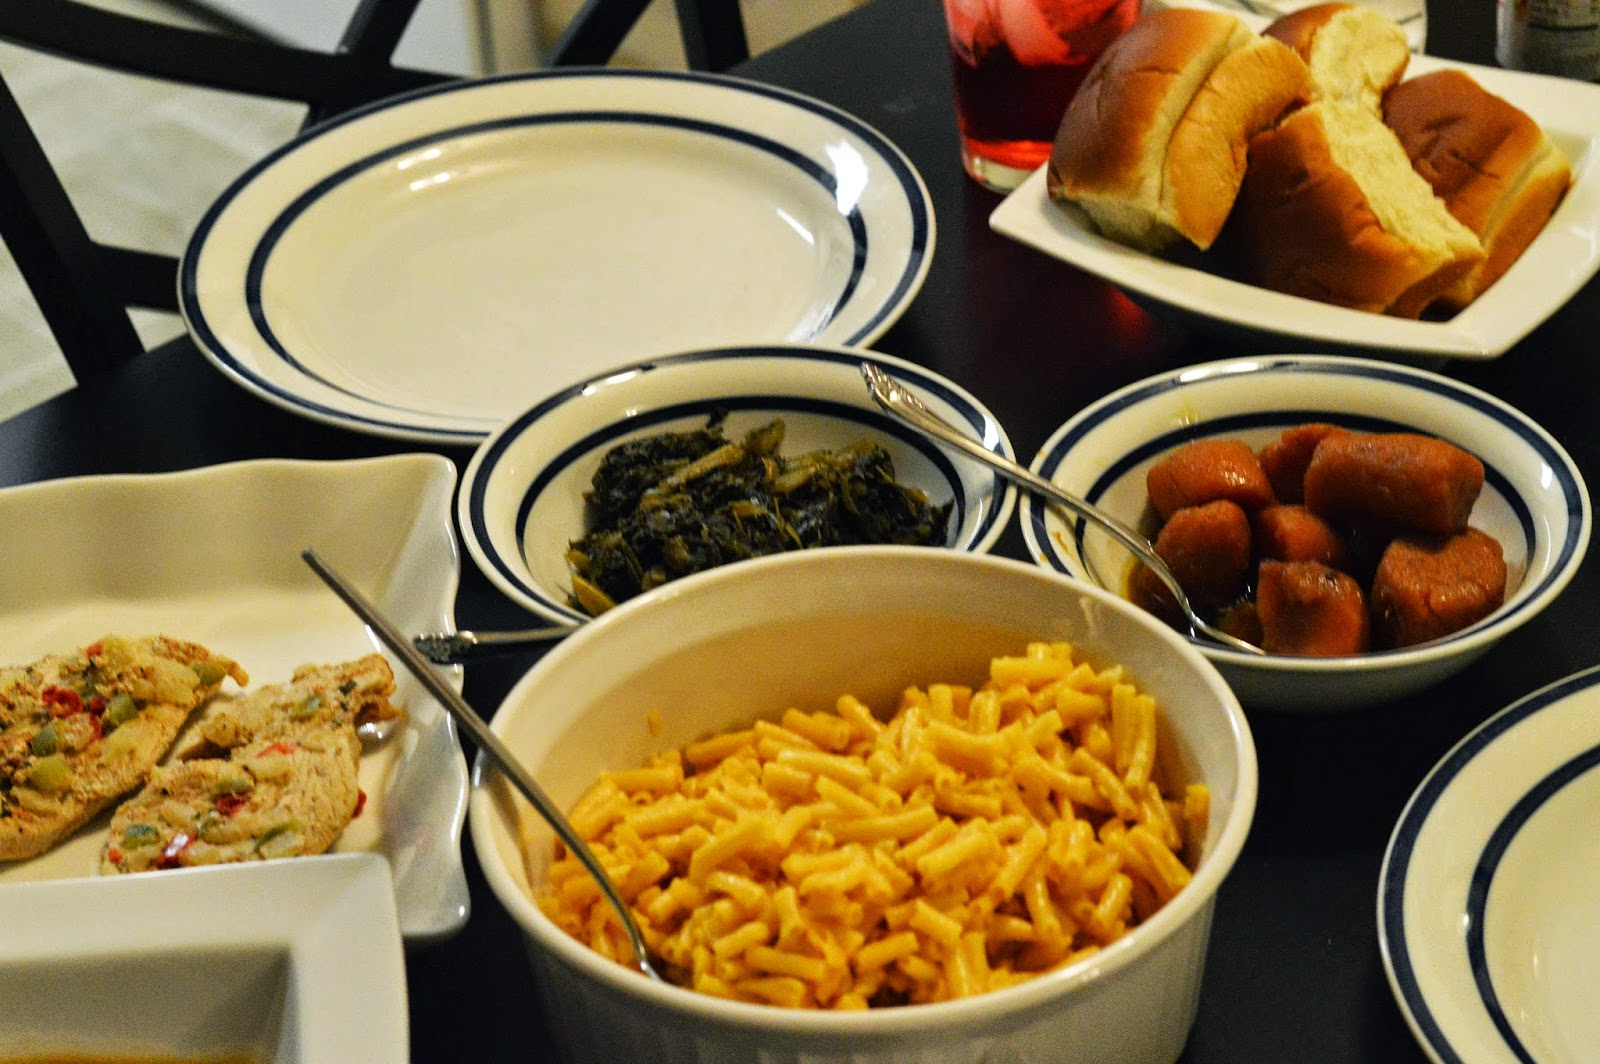 Rhianna's Studio Home cooked Thanksgiving Dinner Spread